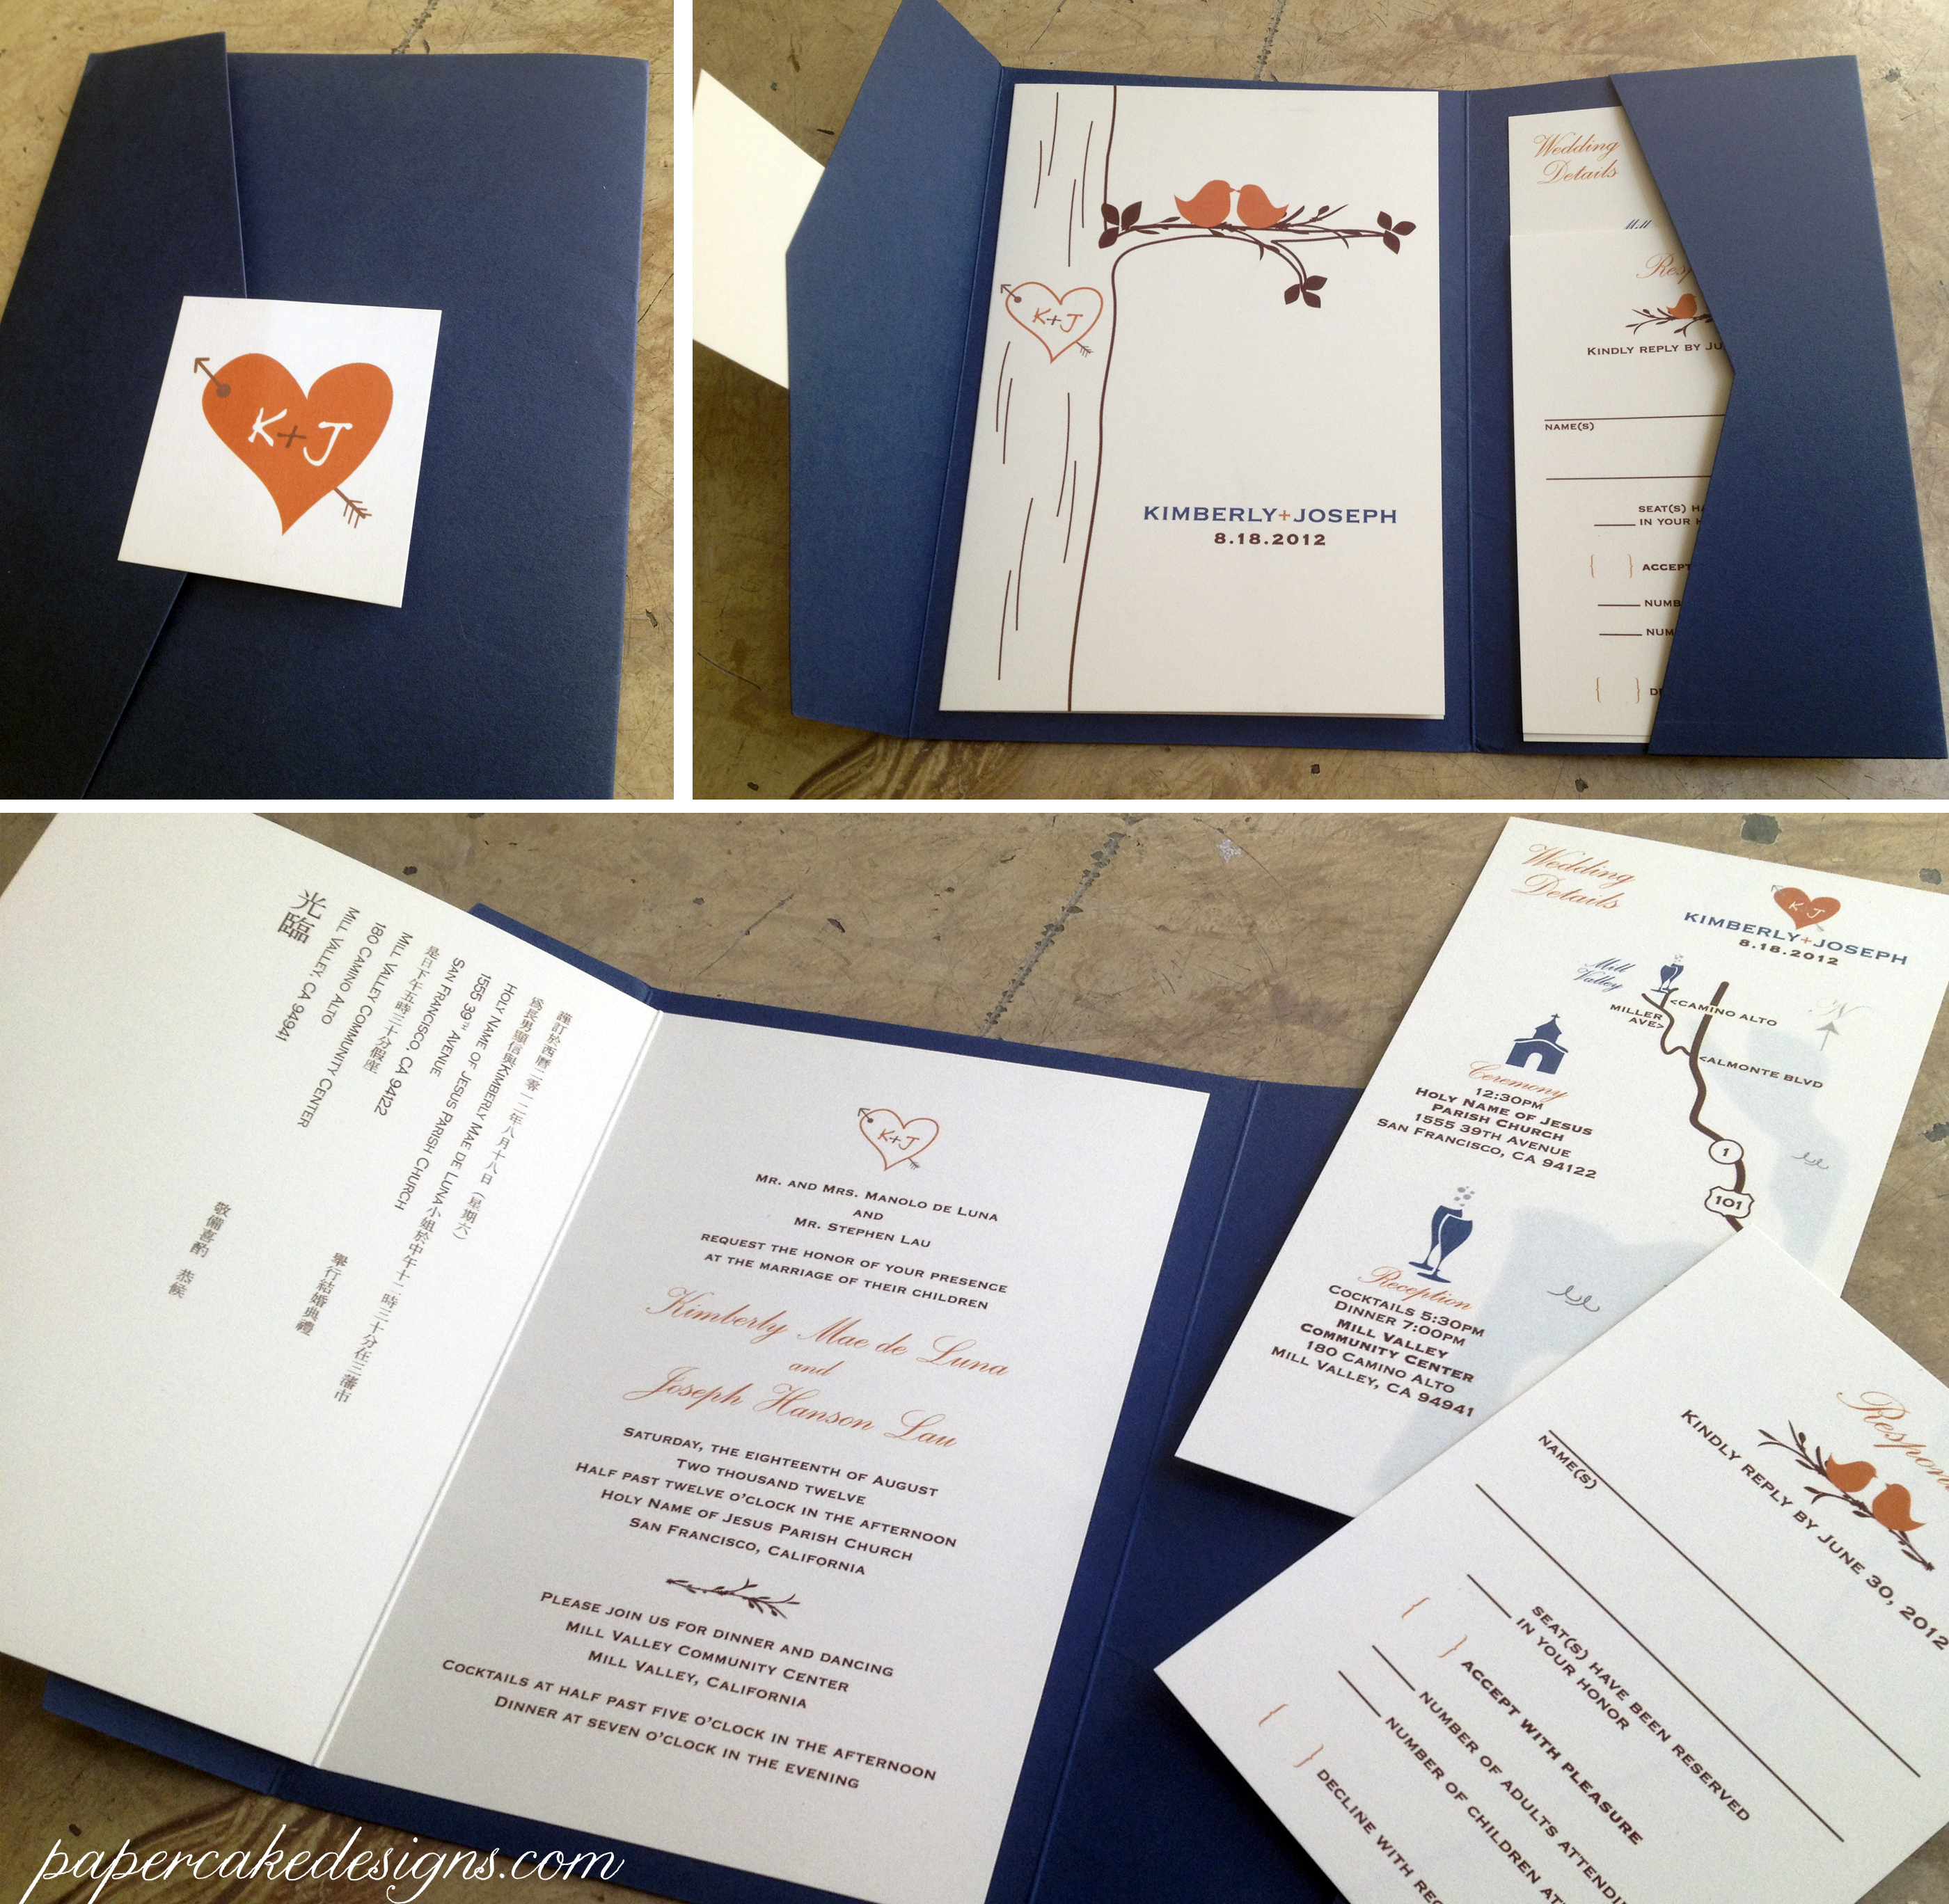 designed monogram including cover design bilingual invite booklet